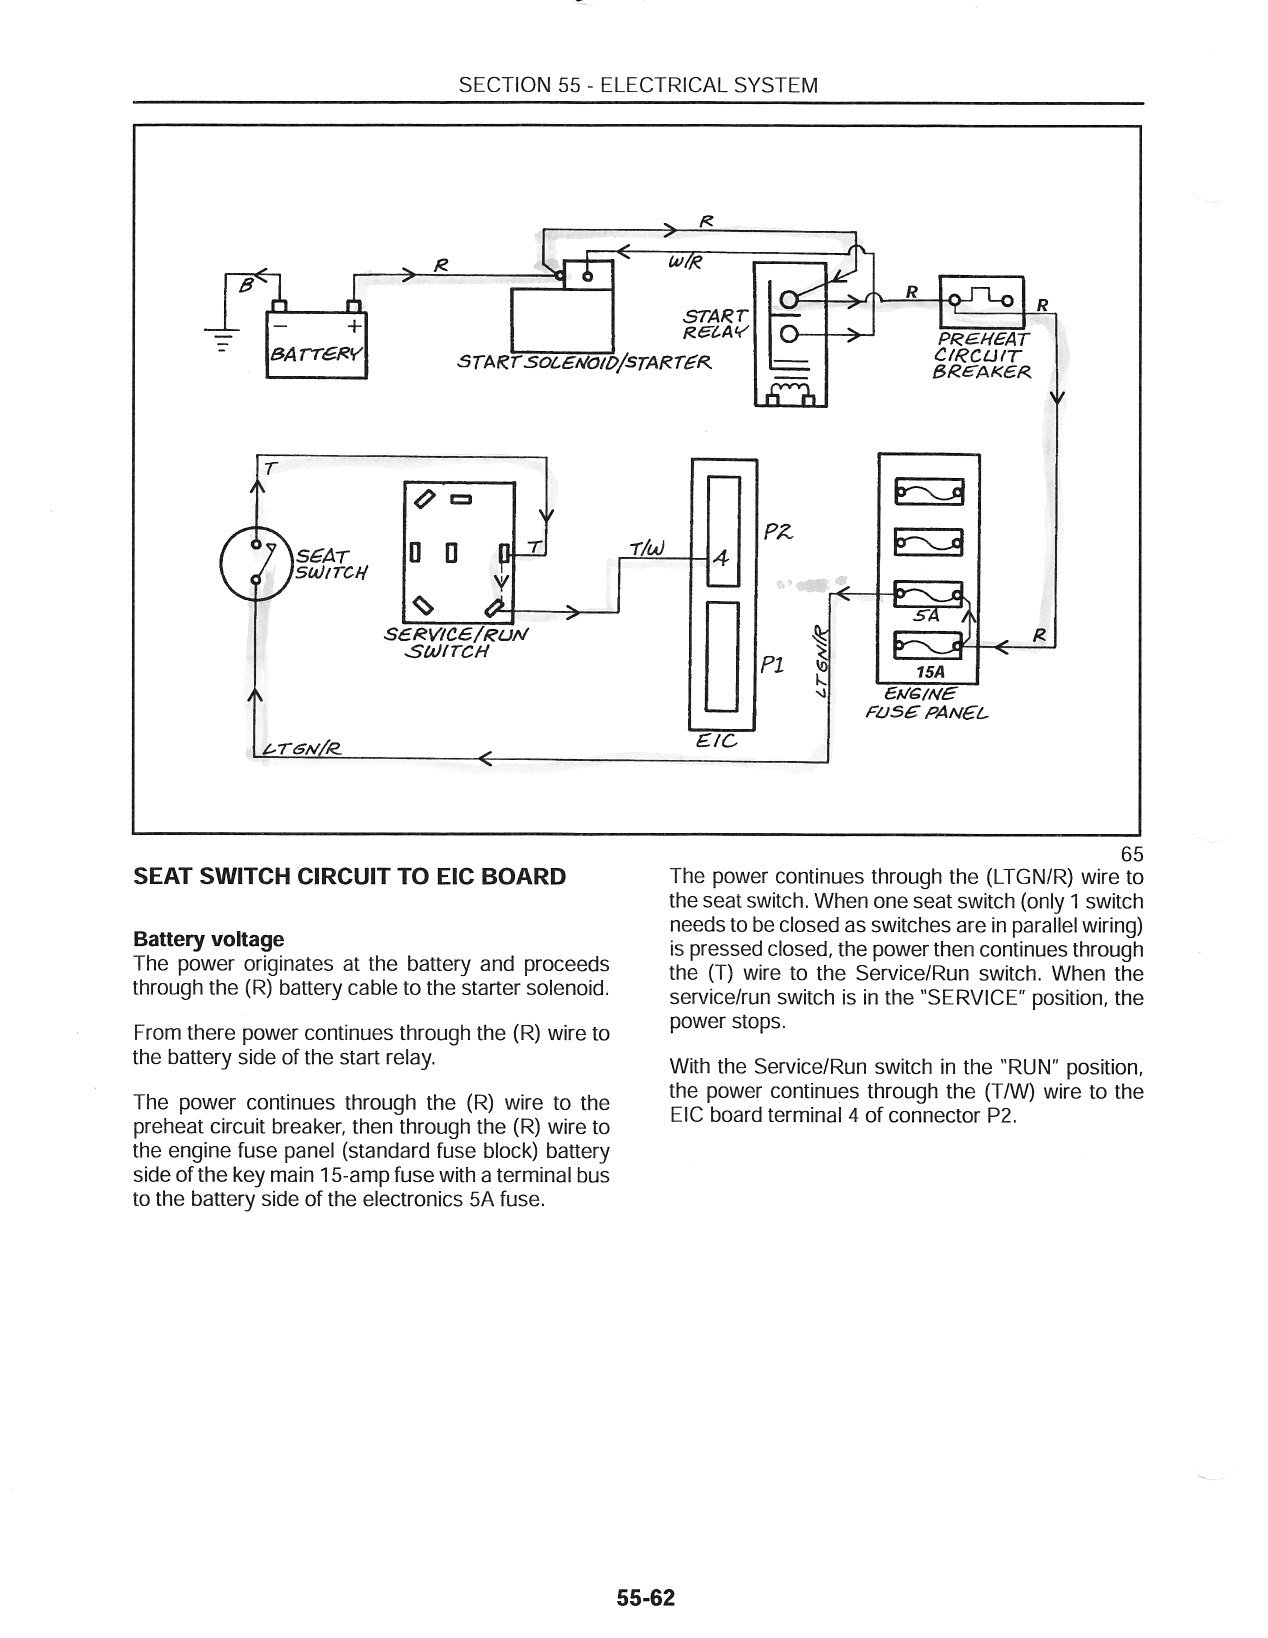 new holland lt 185b wiring diagram new holland ls 185 wiring diagram   elsalvadorla New Holland LS180 Wiring-Diagram Accessory New Holland LS185 Wiring-Diagram